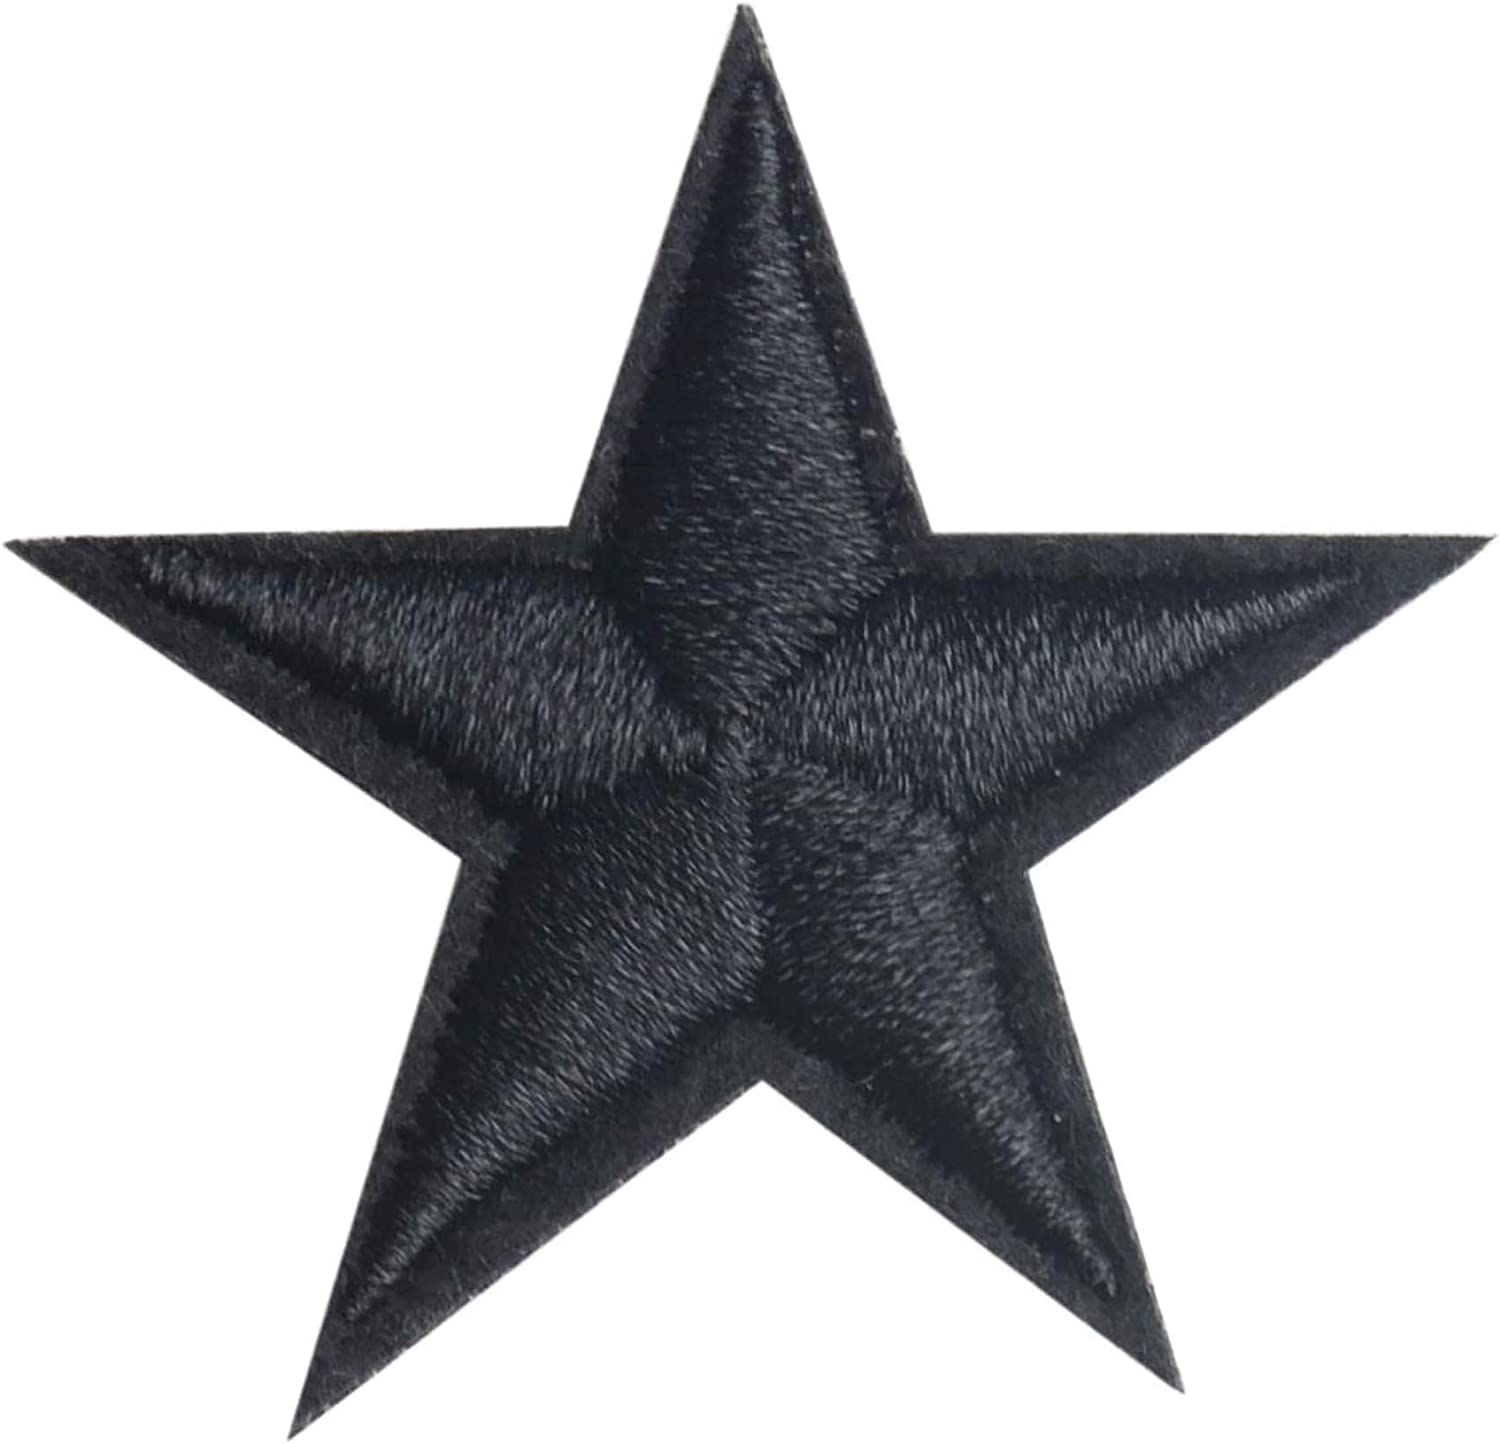 Pack of 24 Ranking TOP16 Star Sew On Stickers Luxury Appliques Rep Badges Embroidered